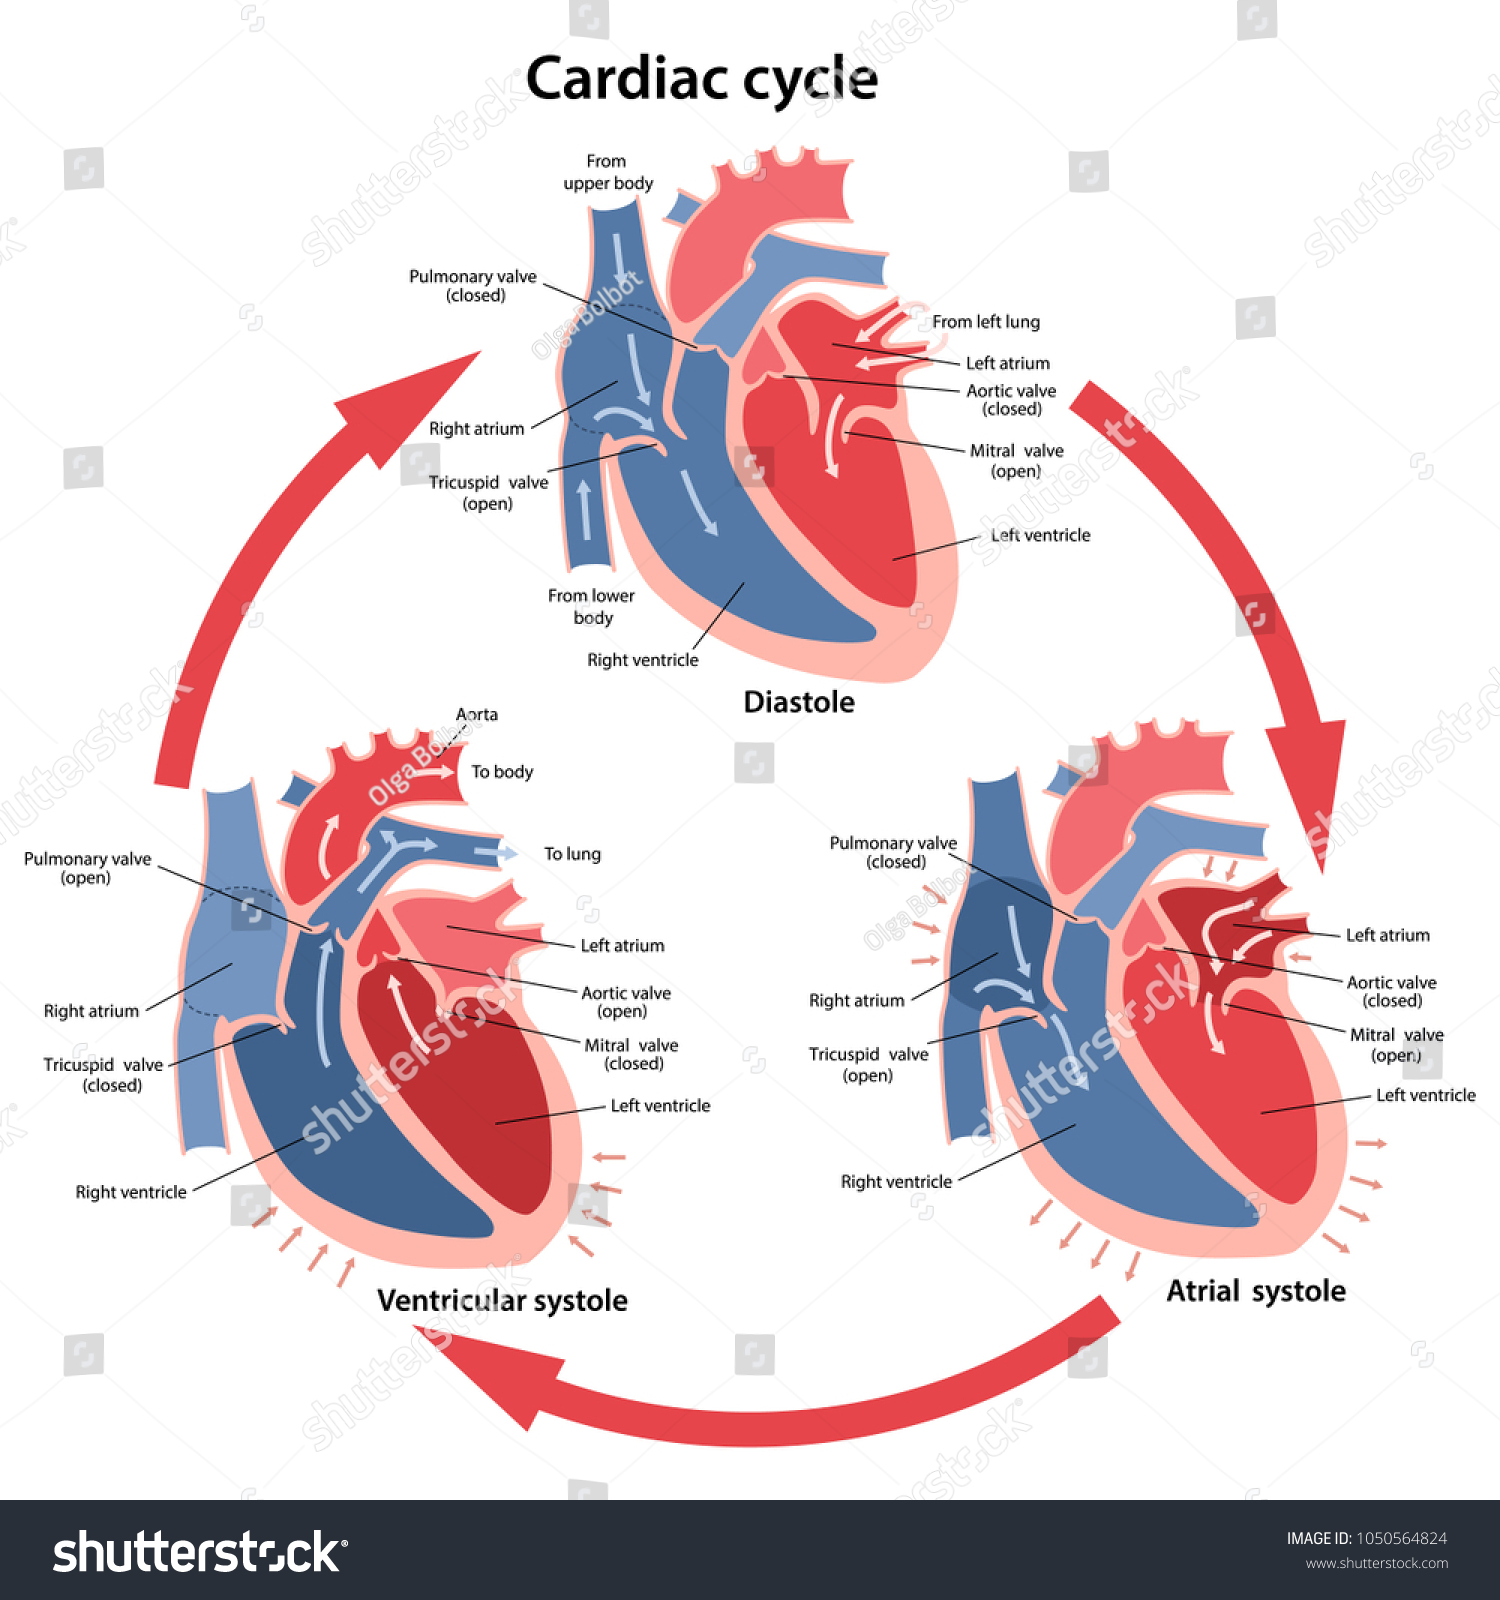 Diagram Phases Cardiac Cycle Main Parts Stock Vector Royalty Free Of The With Labeled Circulation Blood Through